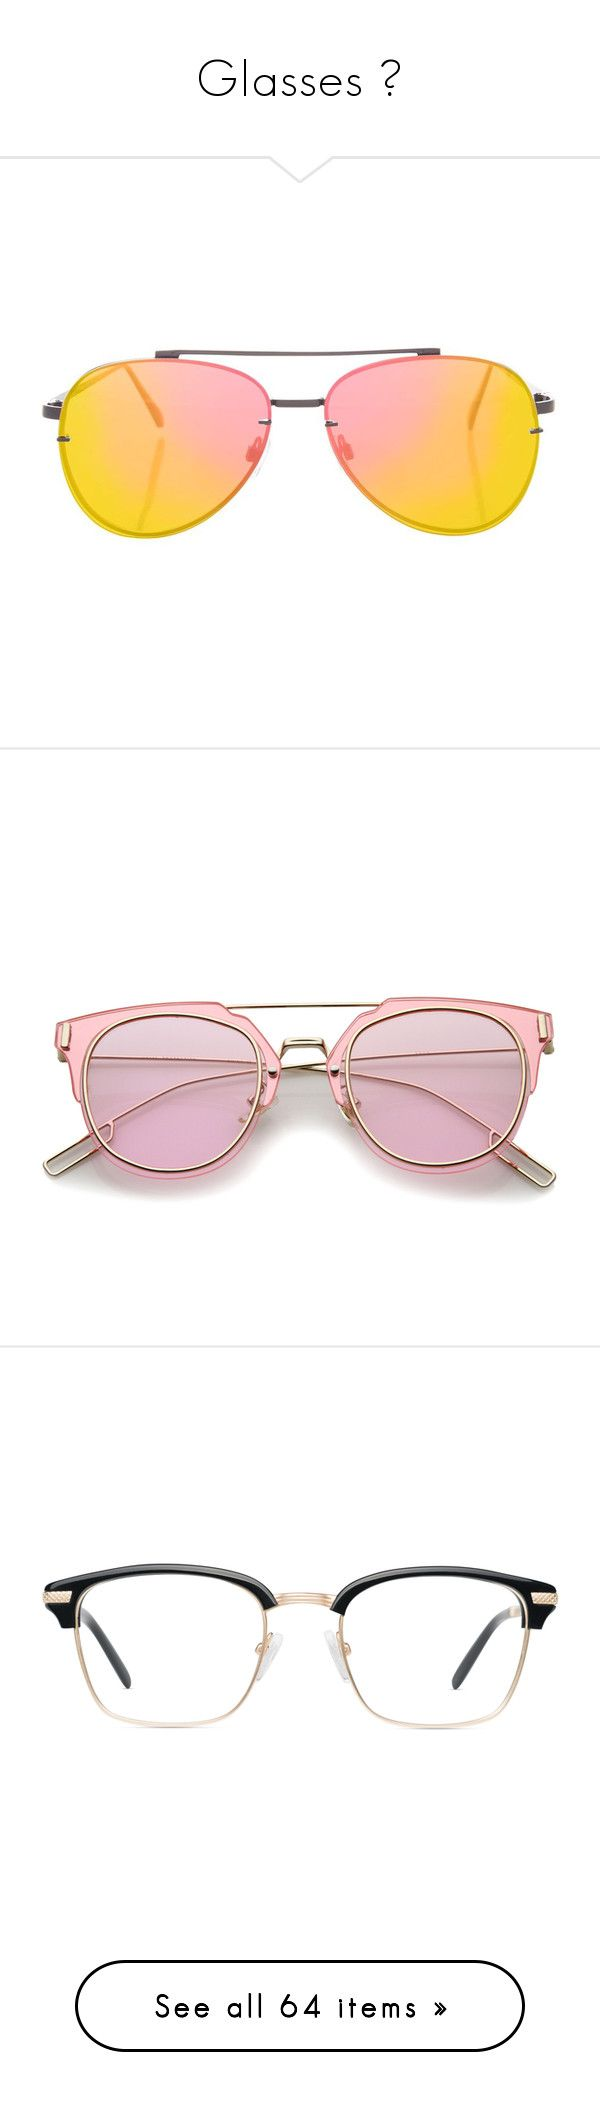 """Glasses 👓"" by b-oooty ❤ liked on Polyvore featuring accessories, eyewear, sunglasses, metal glasses, metal sunglasses, flat lens sunglasses, topshop sunglasses, glasses, pink and pink glasses"